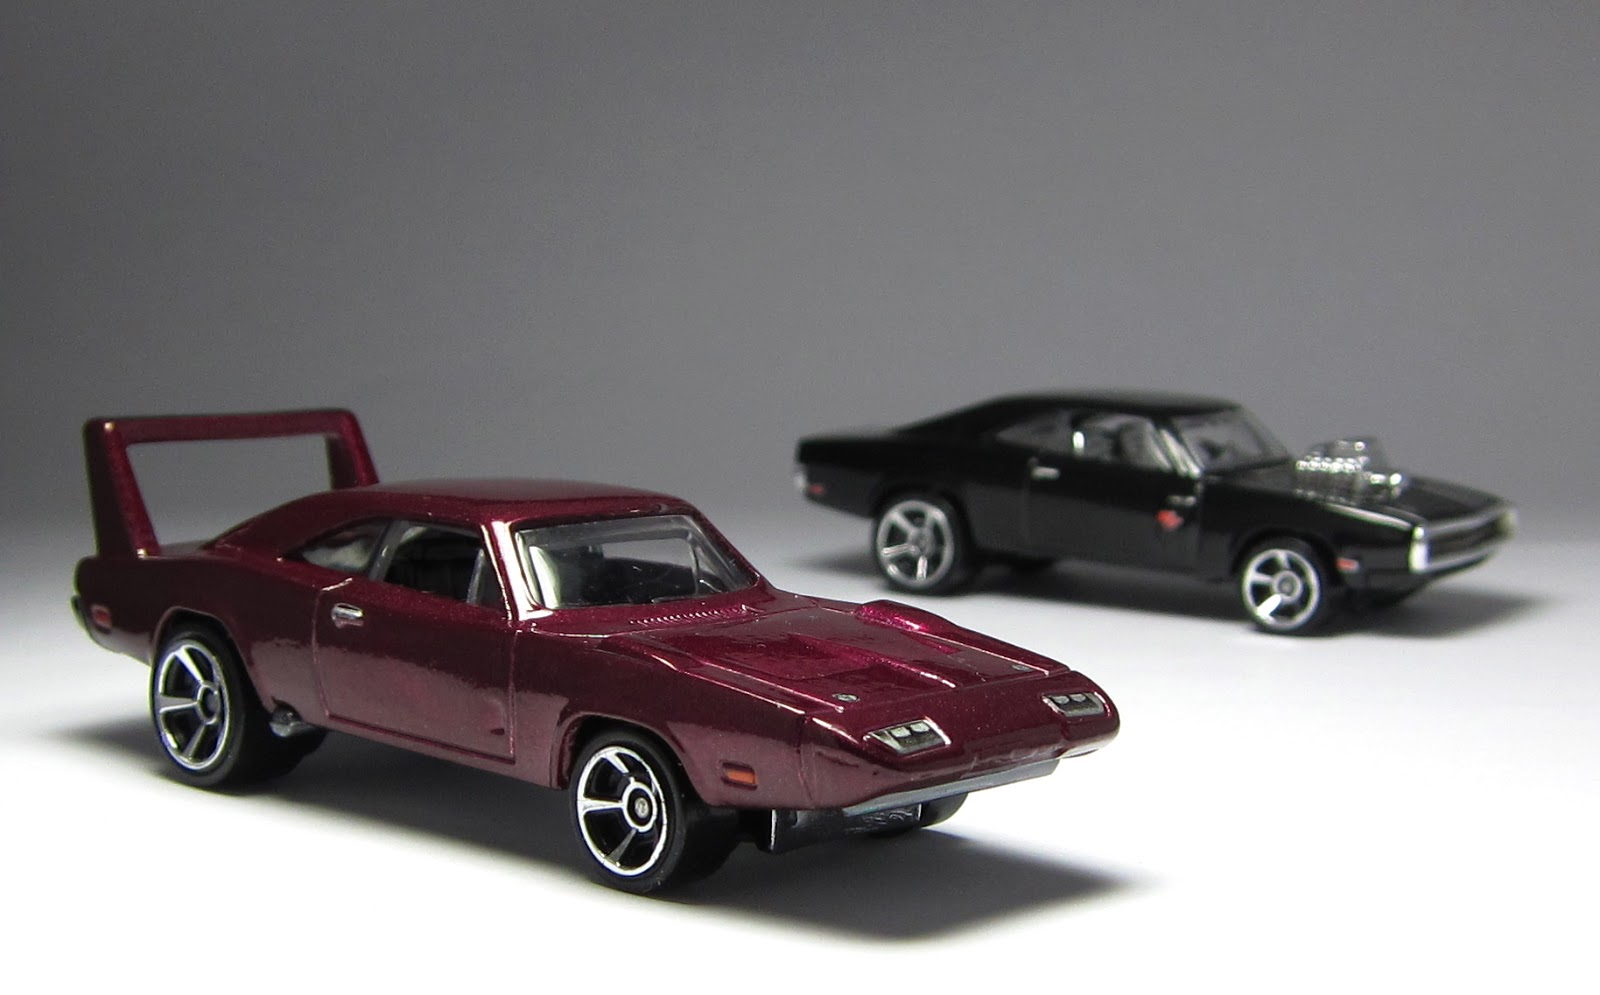 1968 Dodge Charger Daytona Fast Furious 6 Muscle Classic Hot Rod Rods Movie Movies Toy Toys Hotwheels R JPG Wallpaper